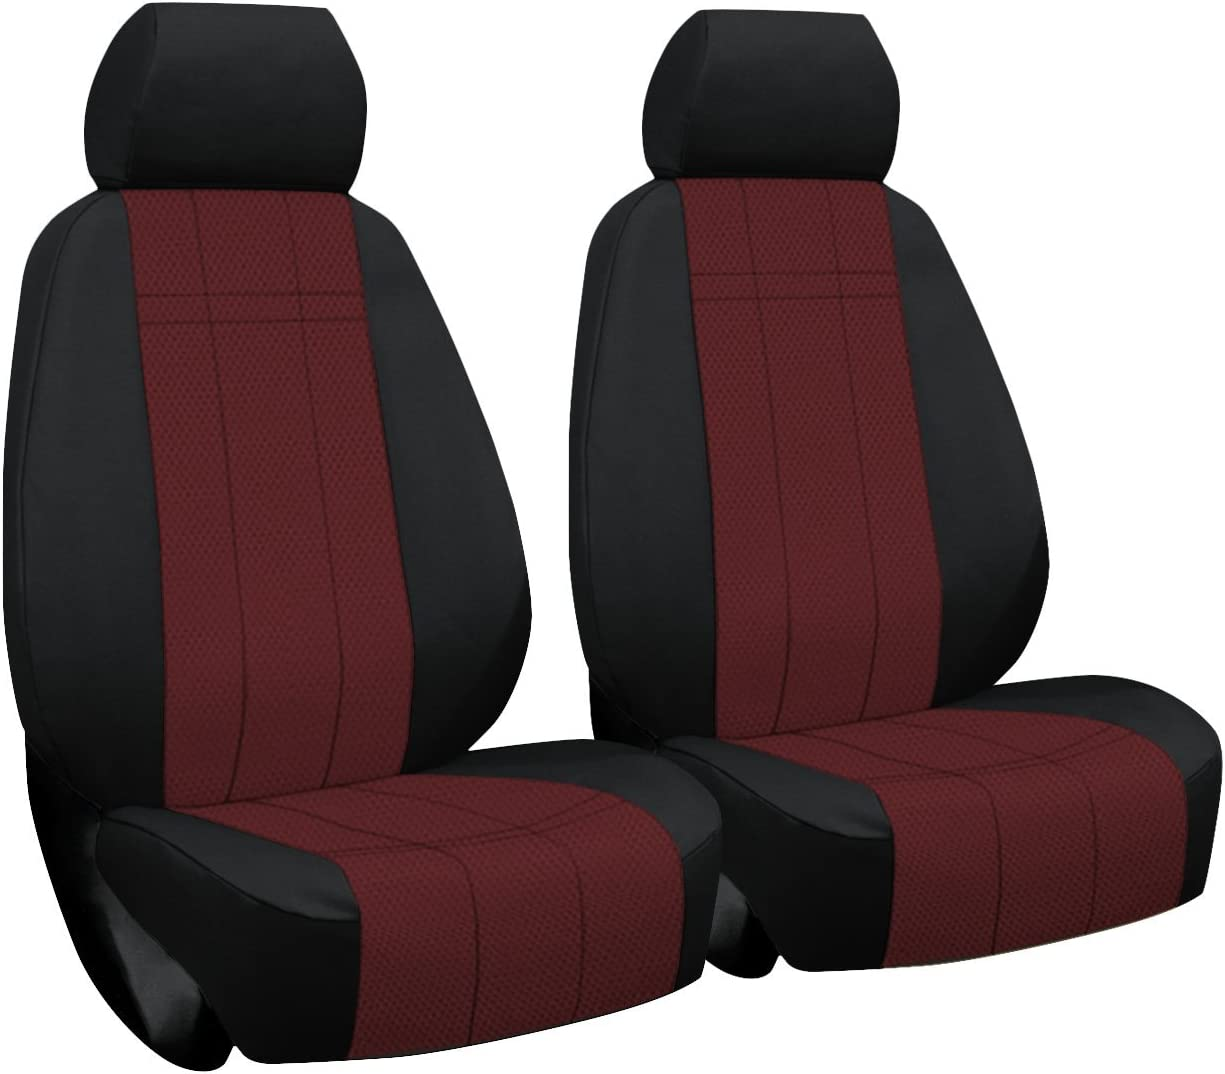 2012-2015 TRD and X Runner in Black for Sport Buckets w//Adjustable Headrests Front Seats: ShearComfort Custom Waterproof Cordura Seat Covers for Toyota Tacoma